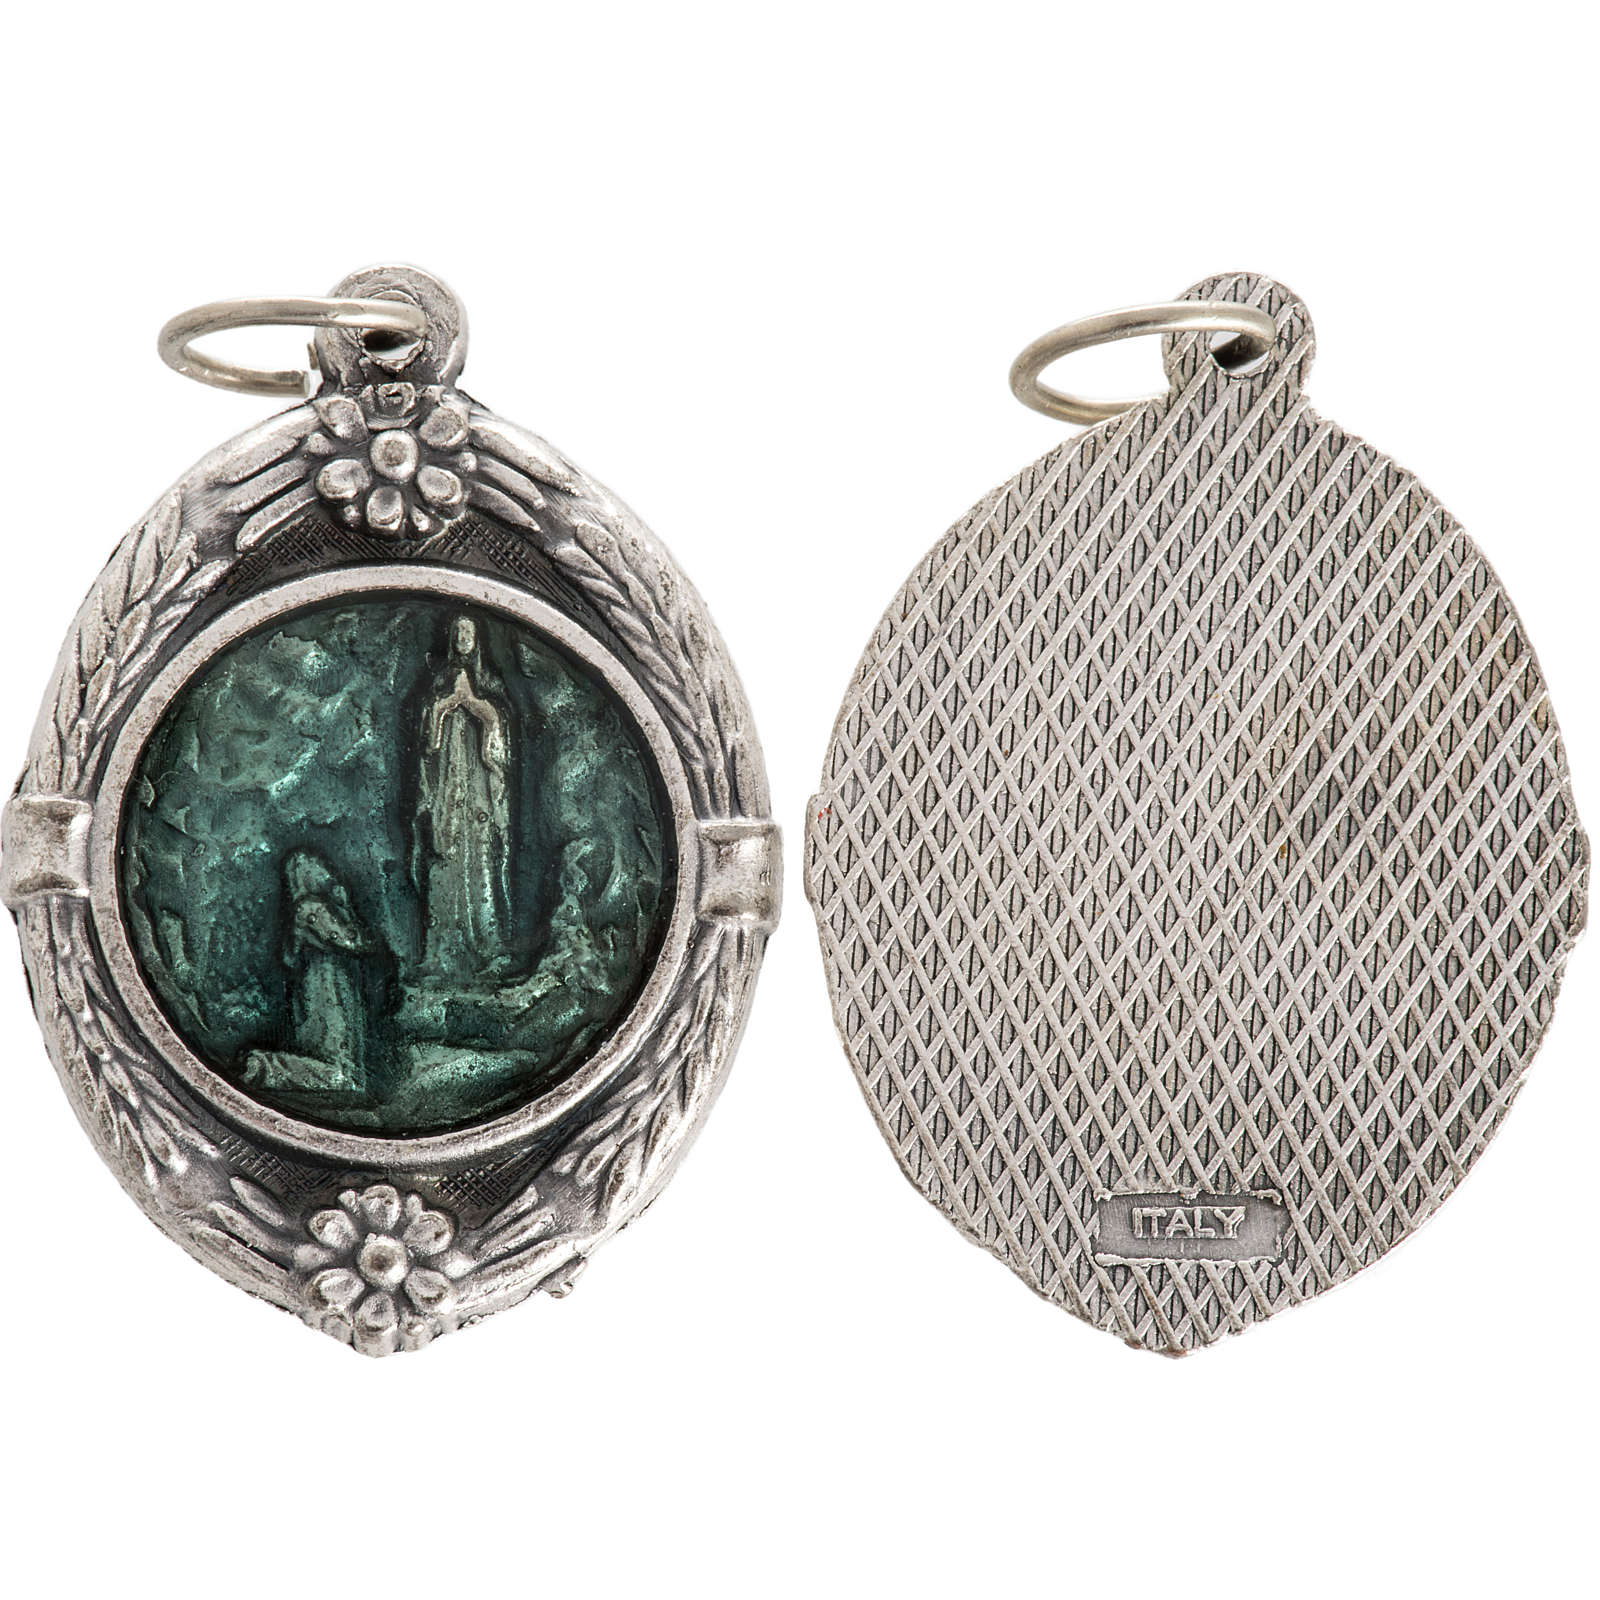 Medal with Our Lady of Lourdes, enamelled silver metal 35mm 4